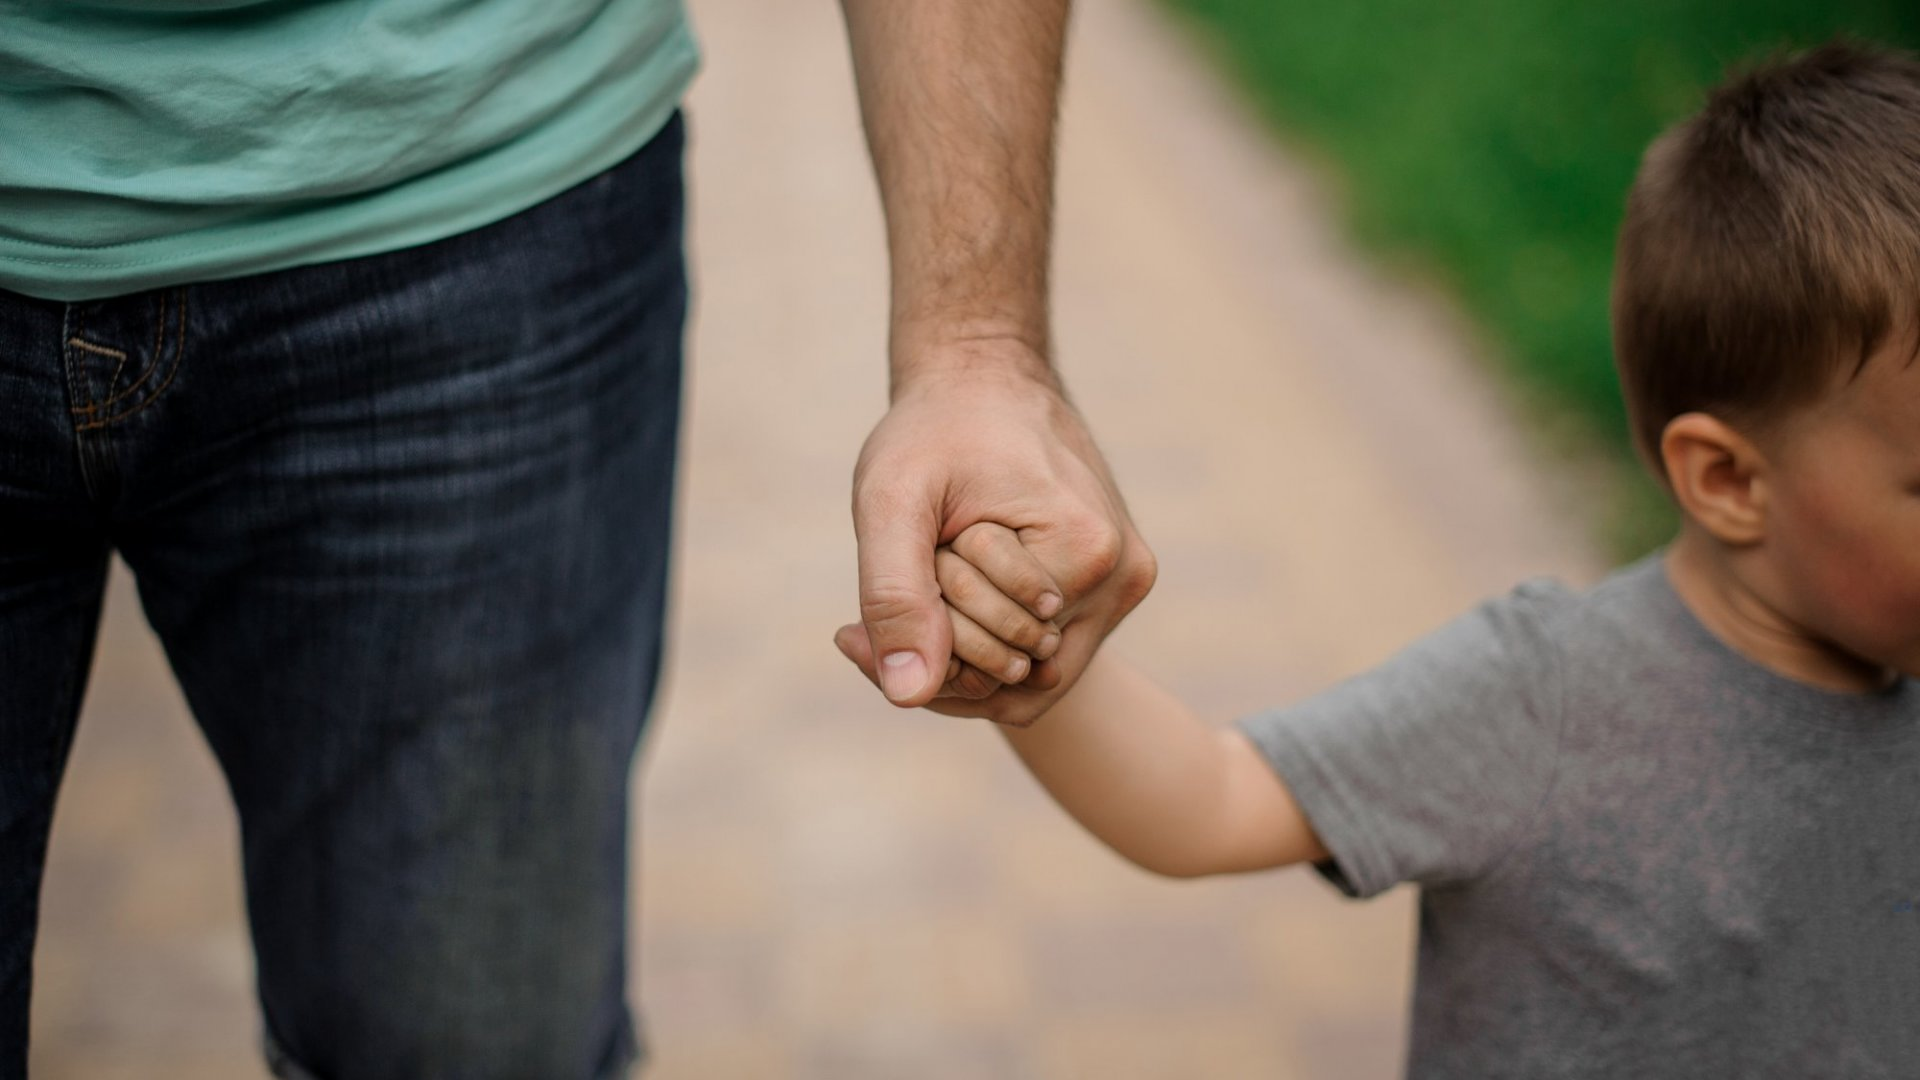 New Harvard Study Says Parents Can Give Their Kids a Lifetime of Happiness By Doing This 1 Thing